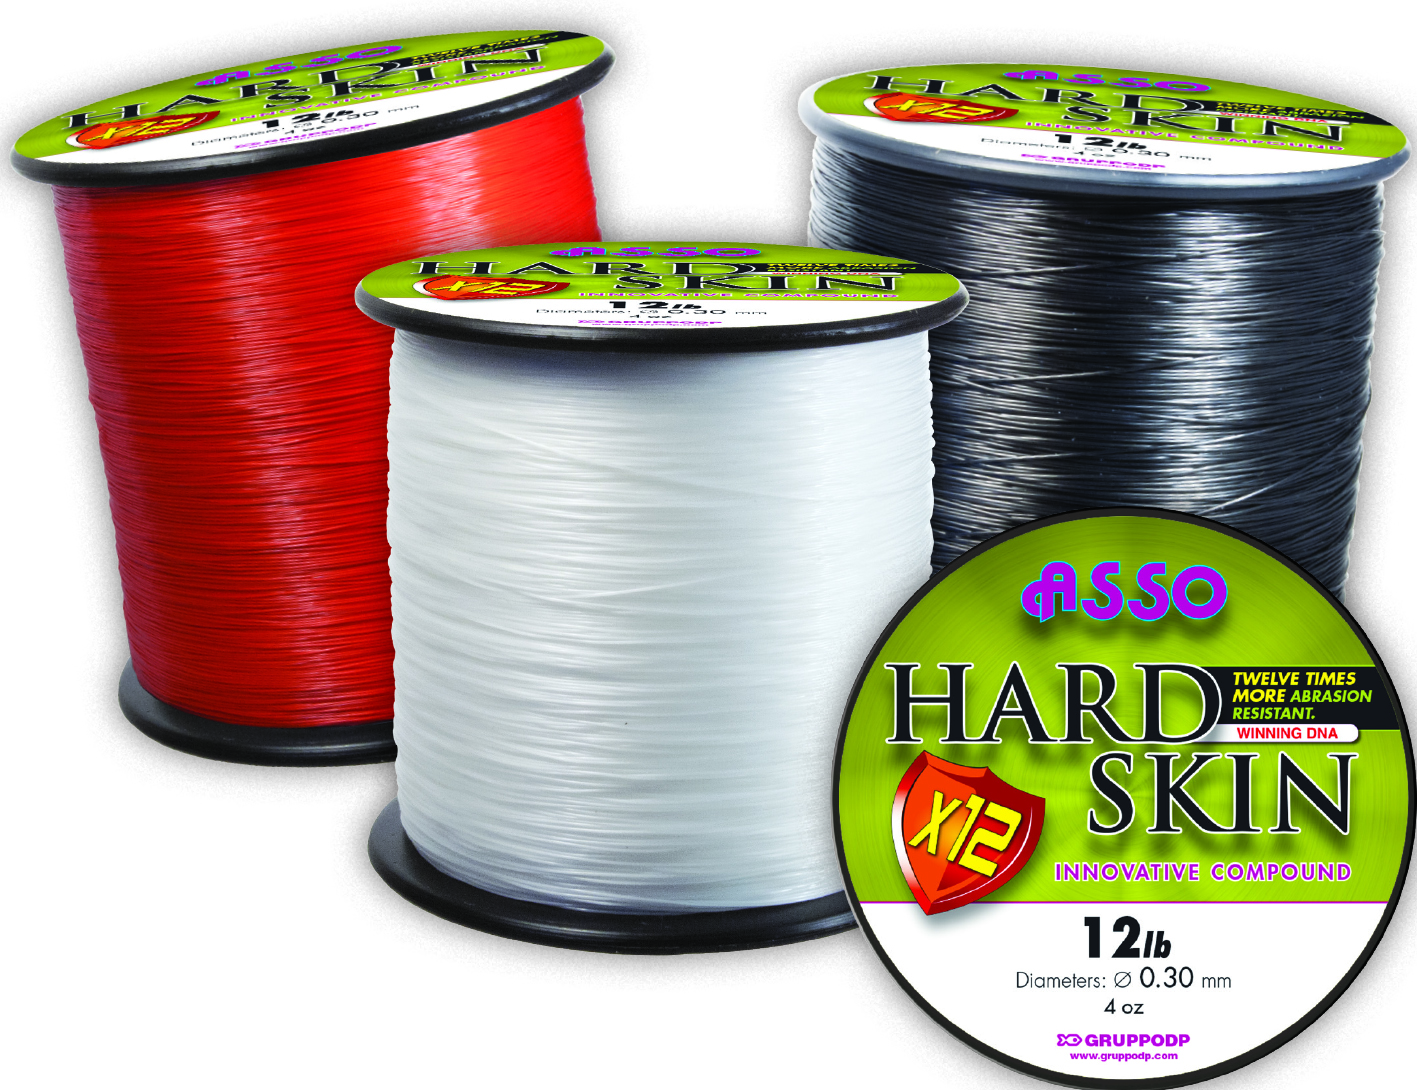 Asso Hard Skin Sea Carp fishing line